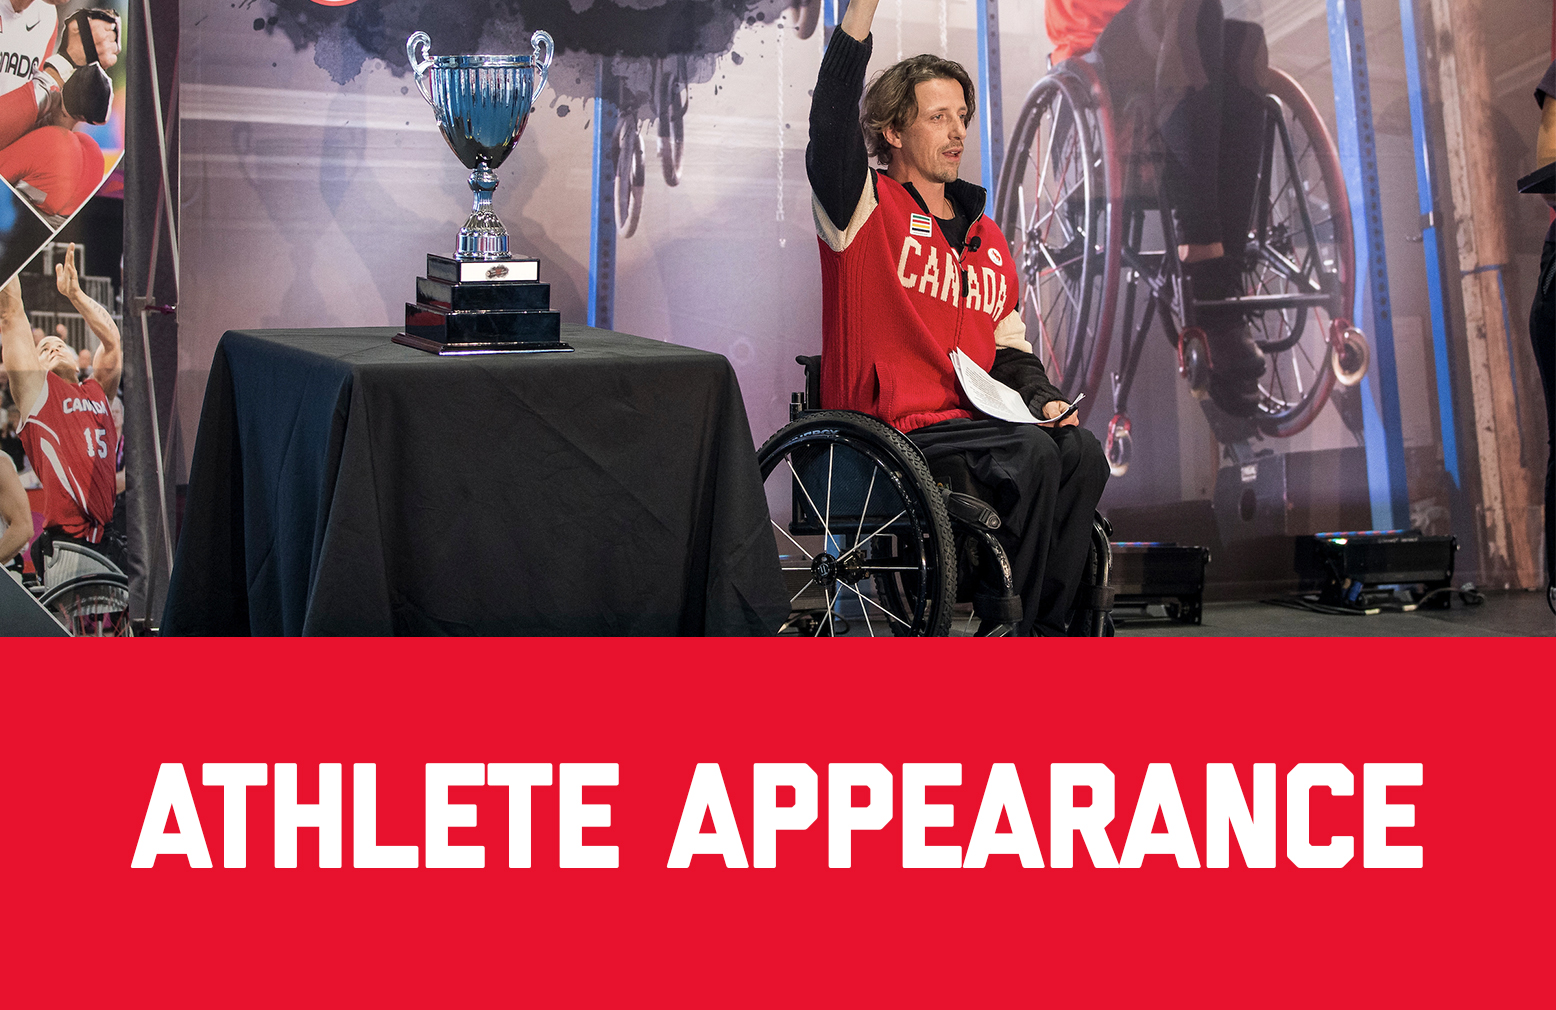 Athlete Appearance